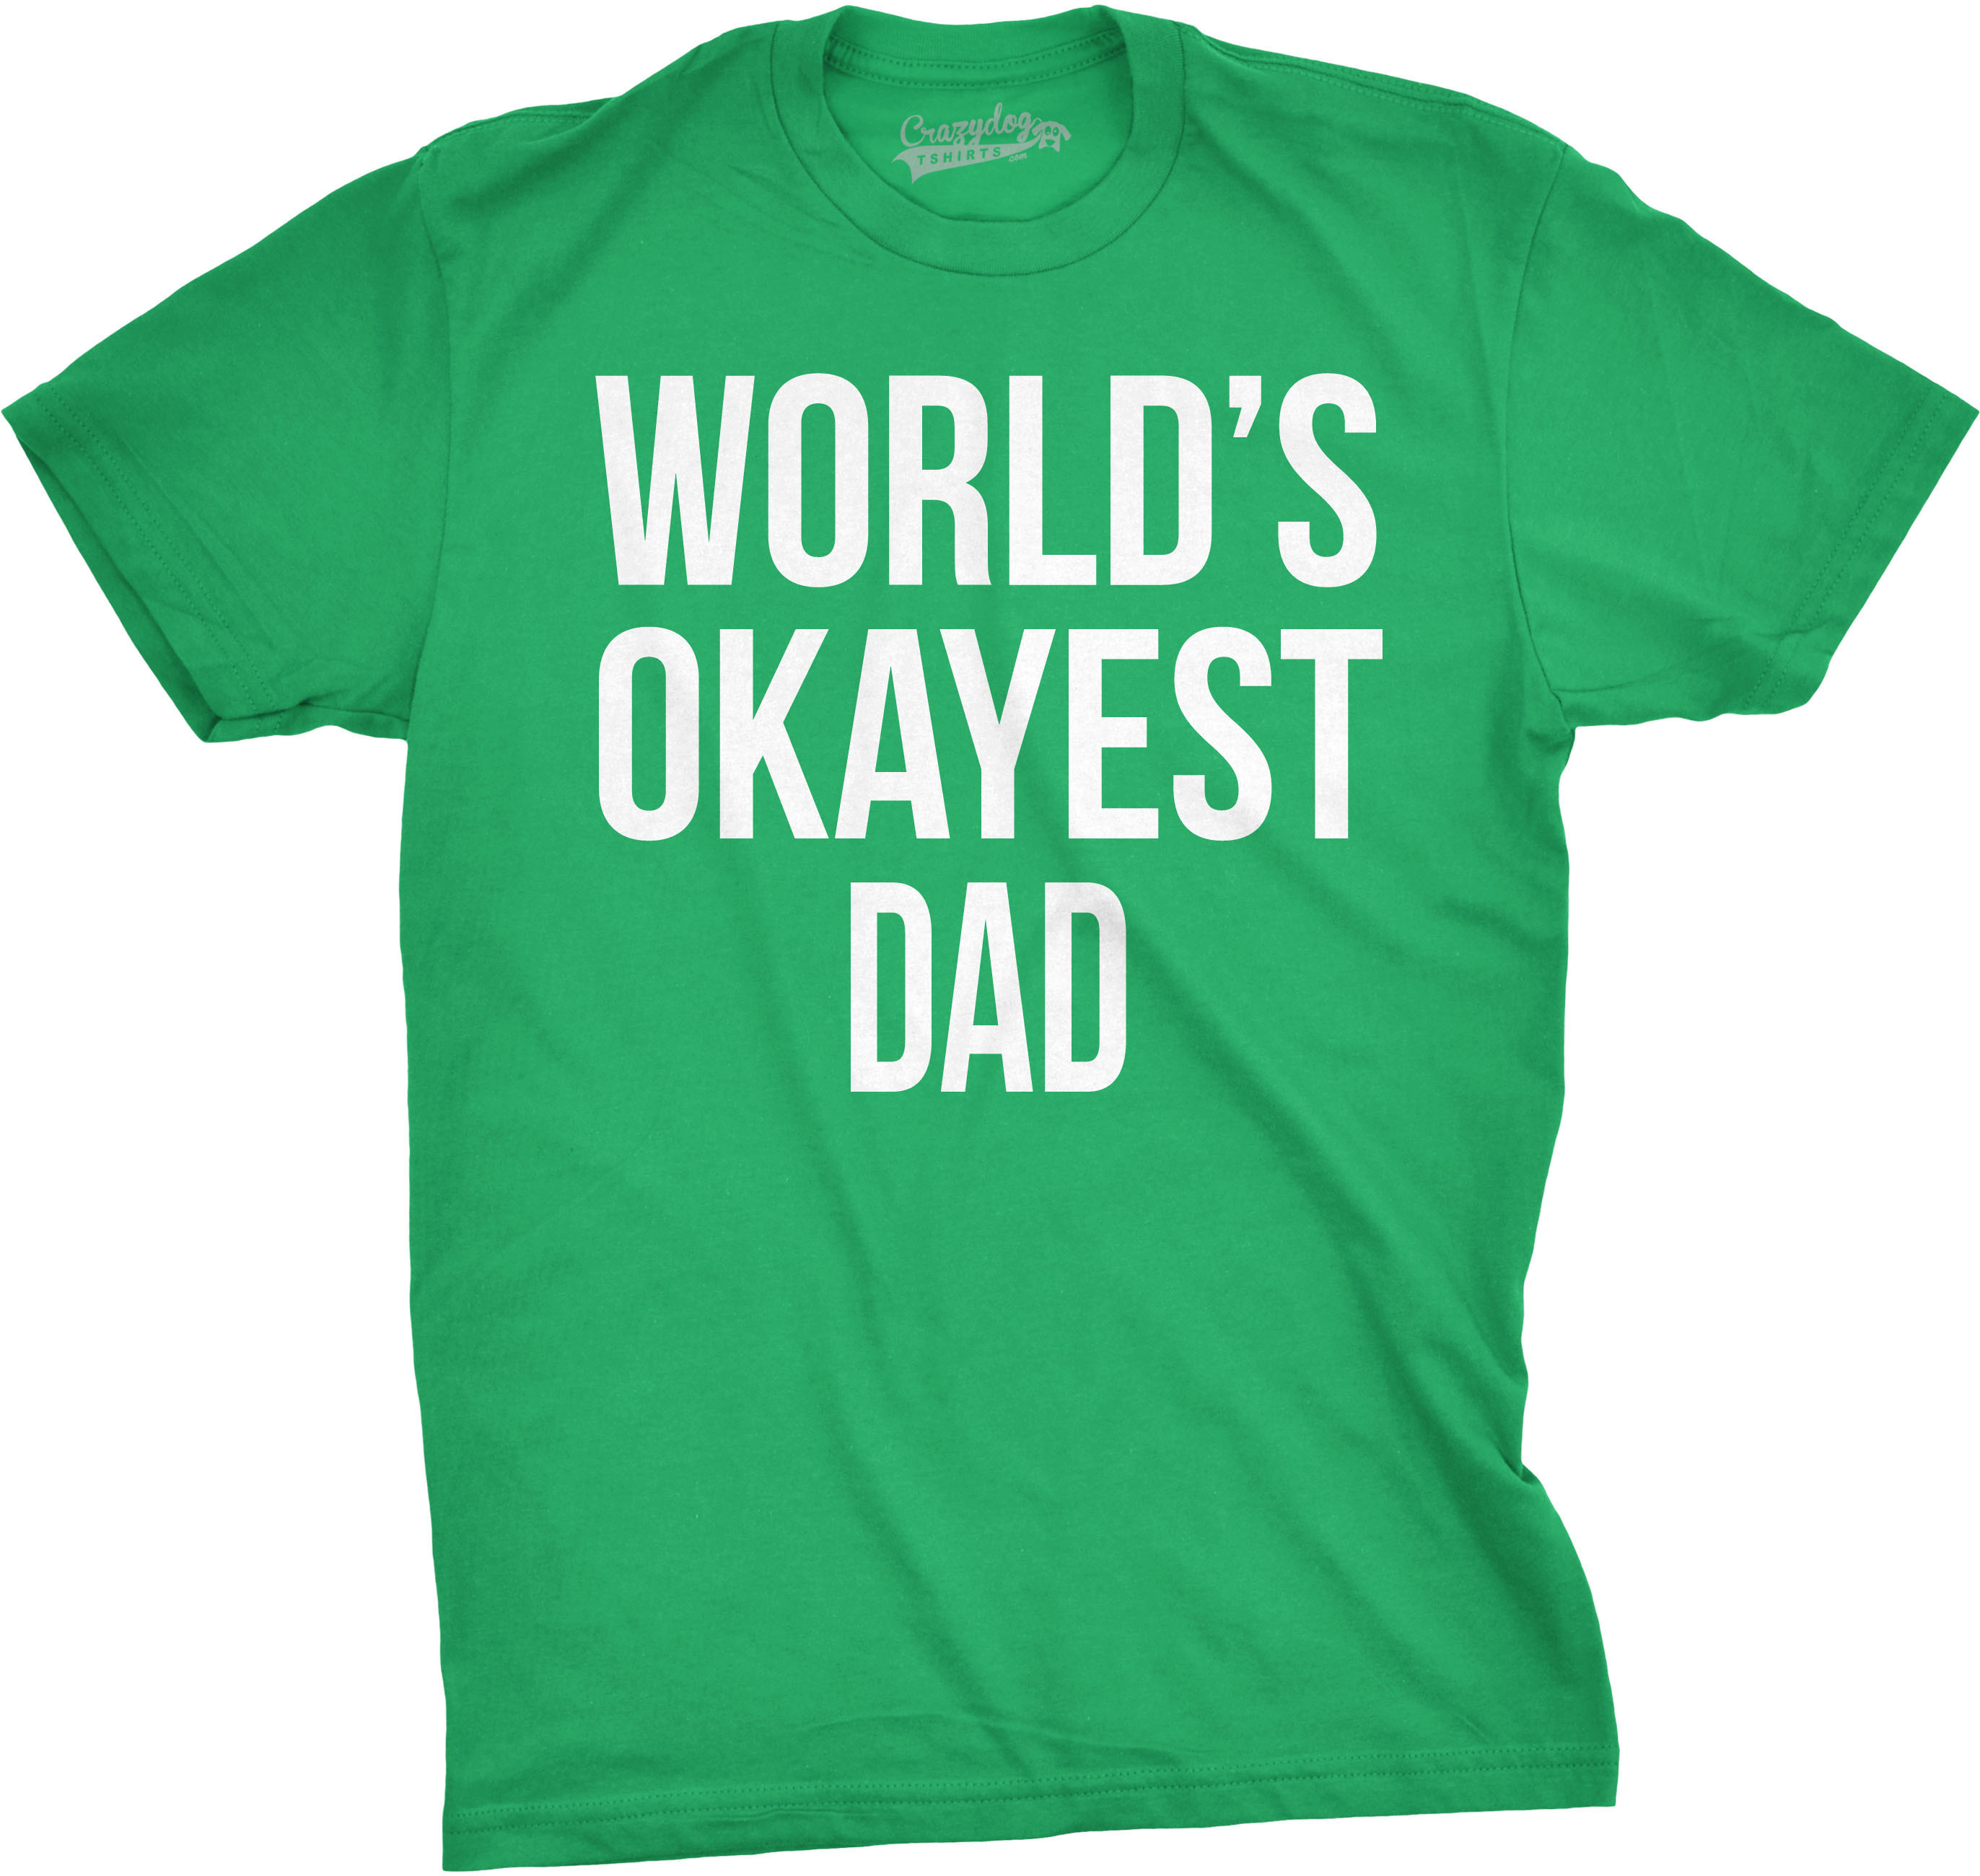 Mens okayest dad t shirt funny t shirts for dad novelty T shirts for dad